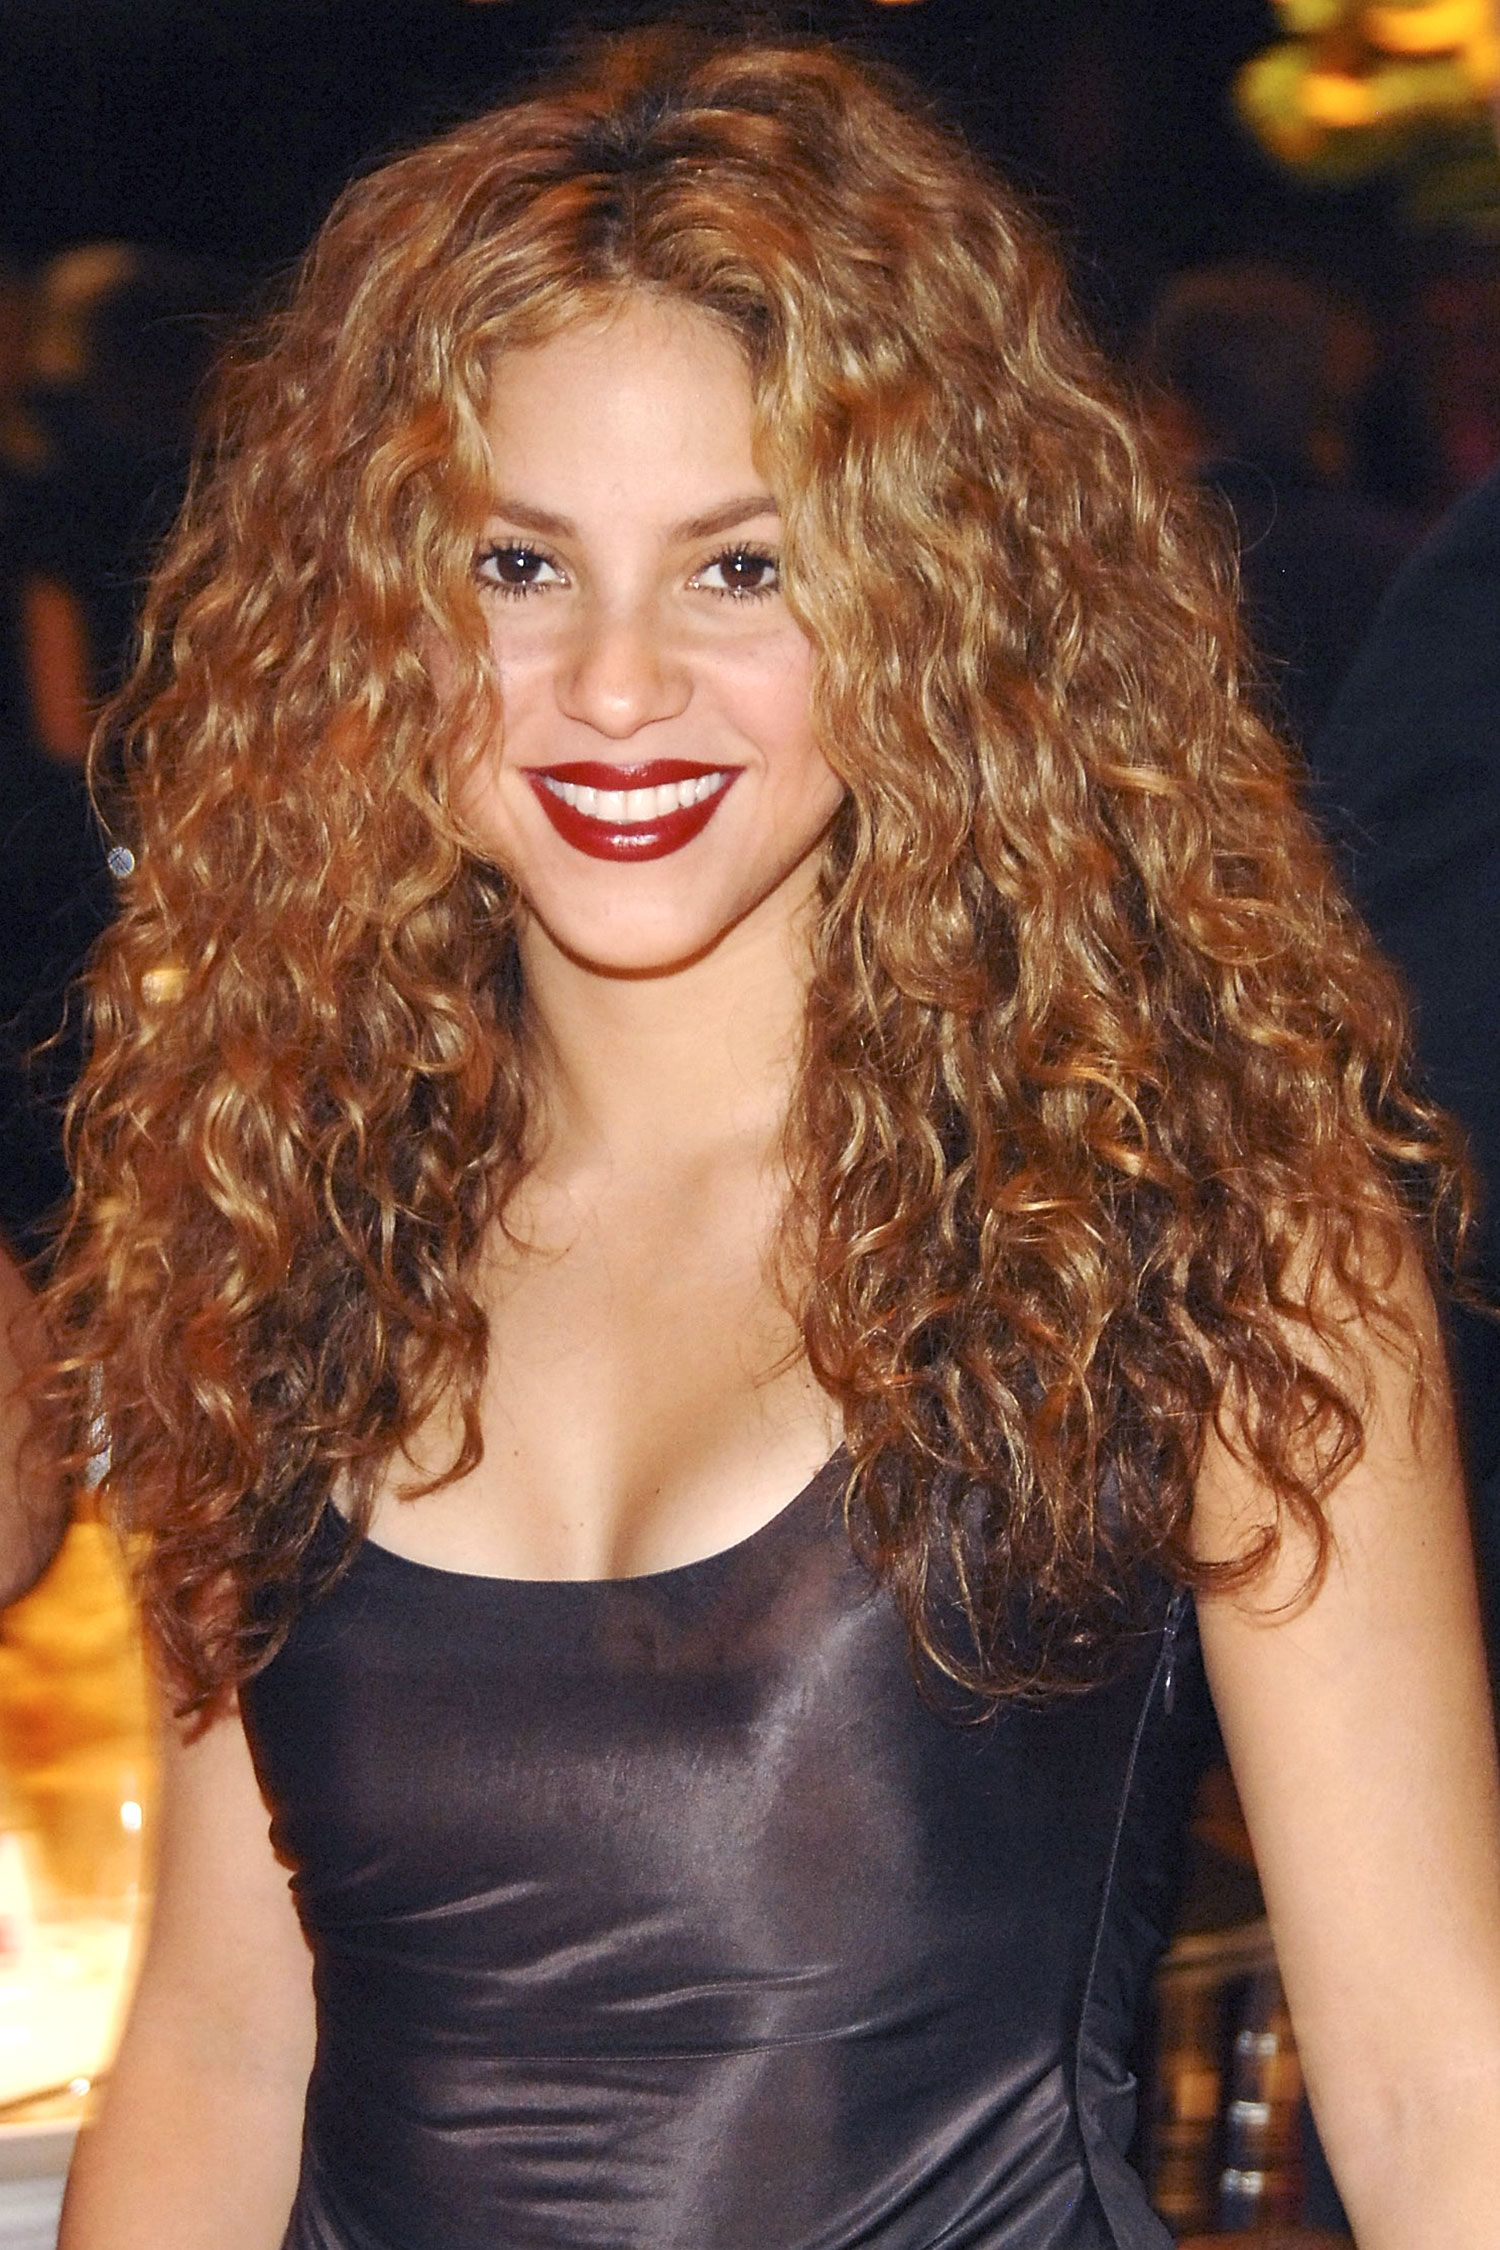 28 celebrity curly hairstyles we love | shakira, curly hairstyles